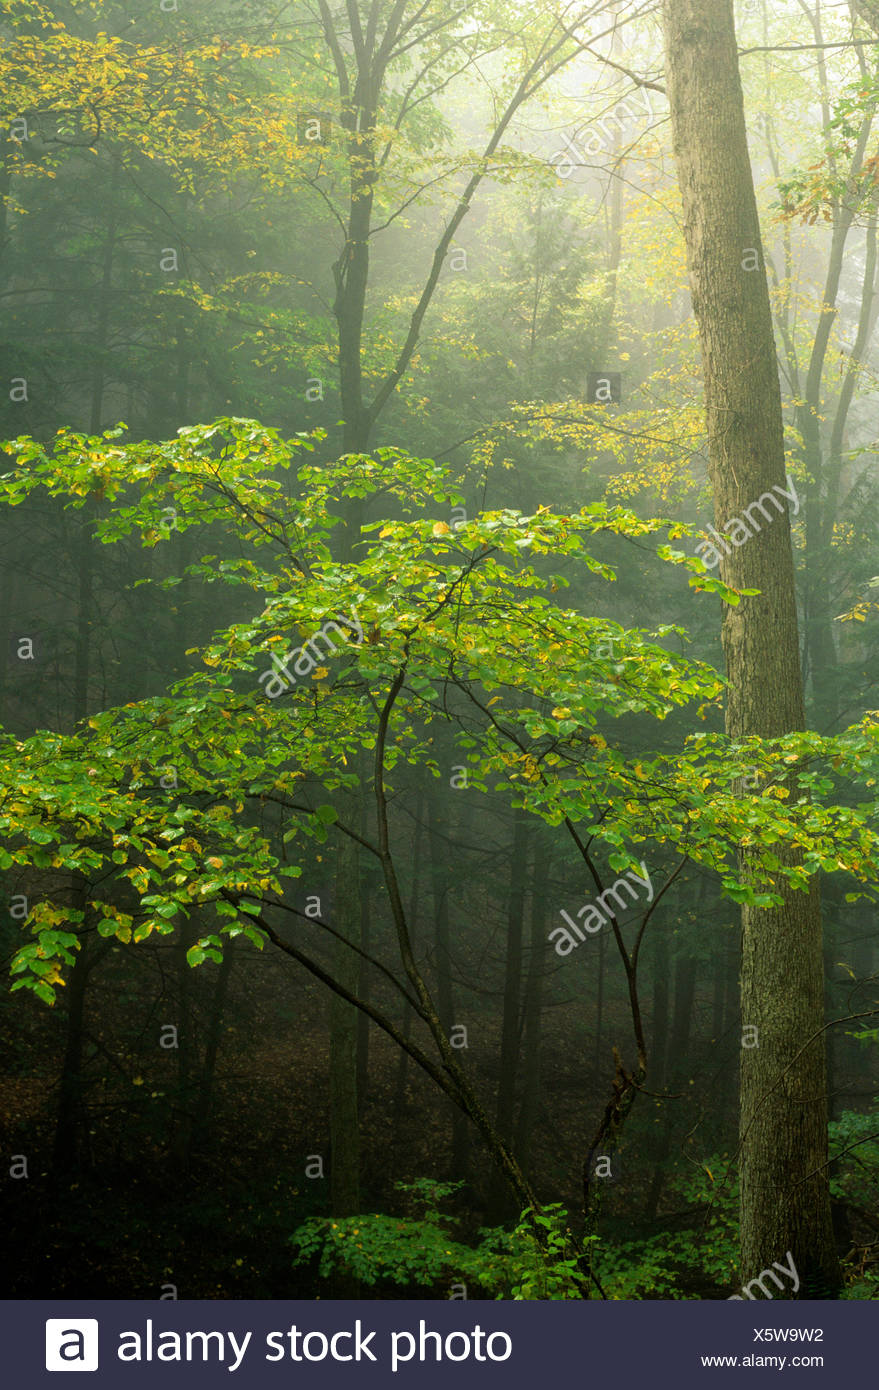 Witchhazel forest, Kettle Creek State Park, Pennsylvania. - Stock Image